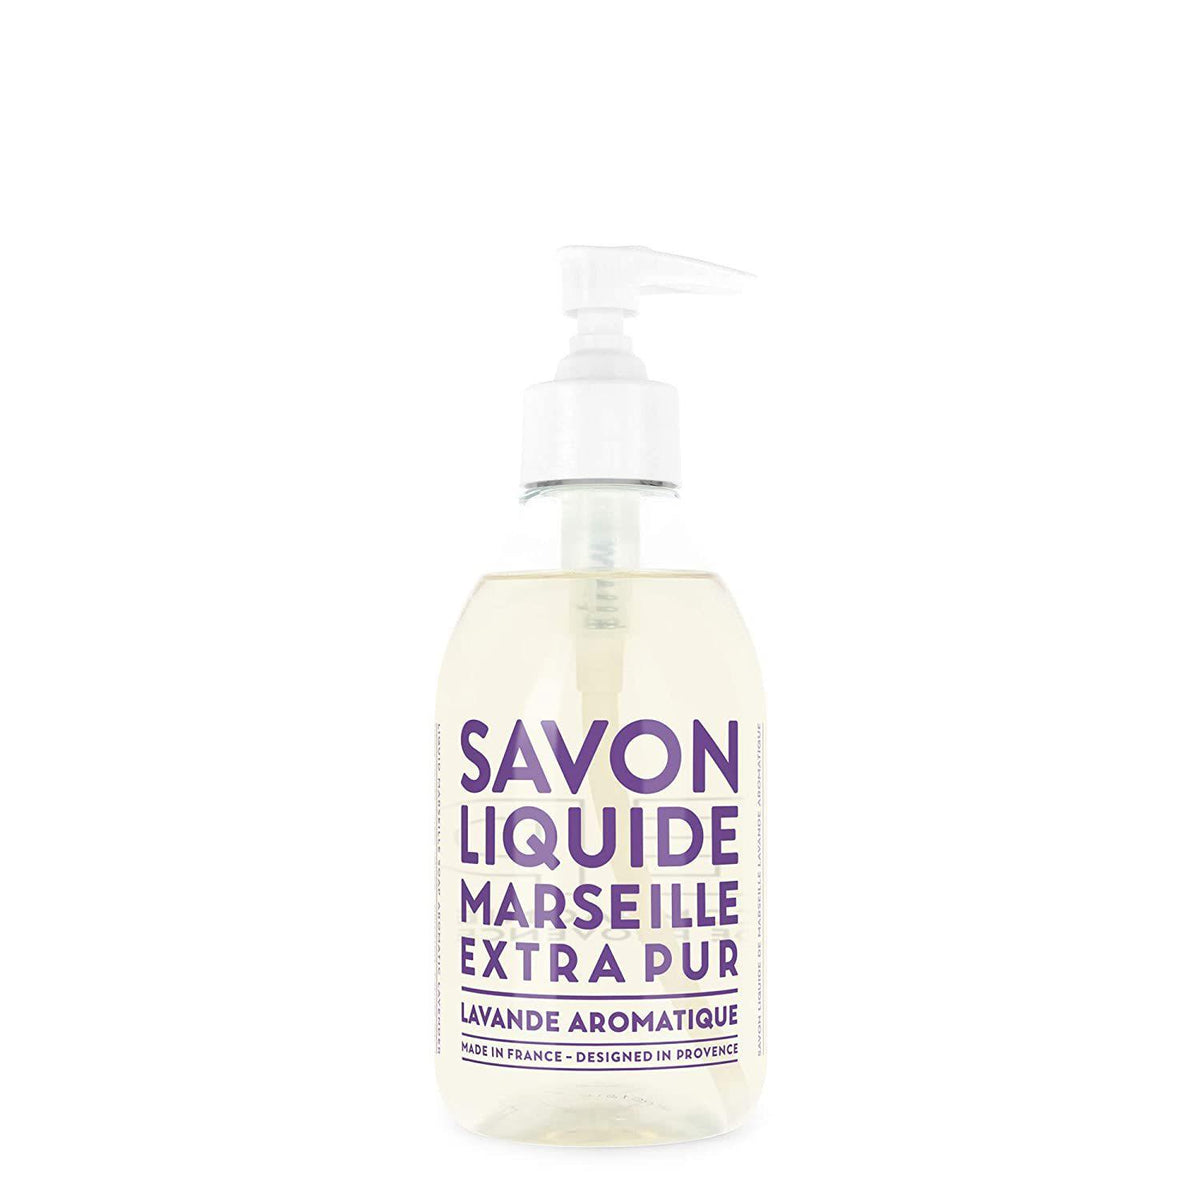 Compagnie de Provence Aromatic Lavender Liquid Marseille Soap 10 oz Plastic Bottle-Compagnie de Provence Savon de Marseille-Oak Manor Fragrances